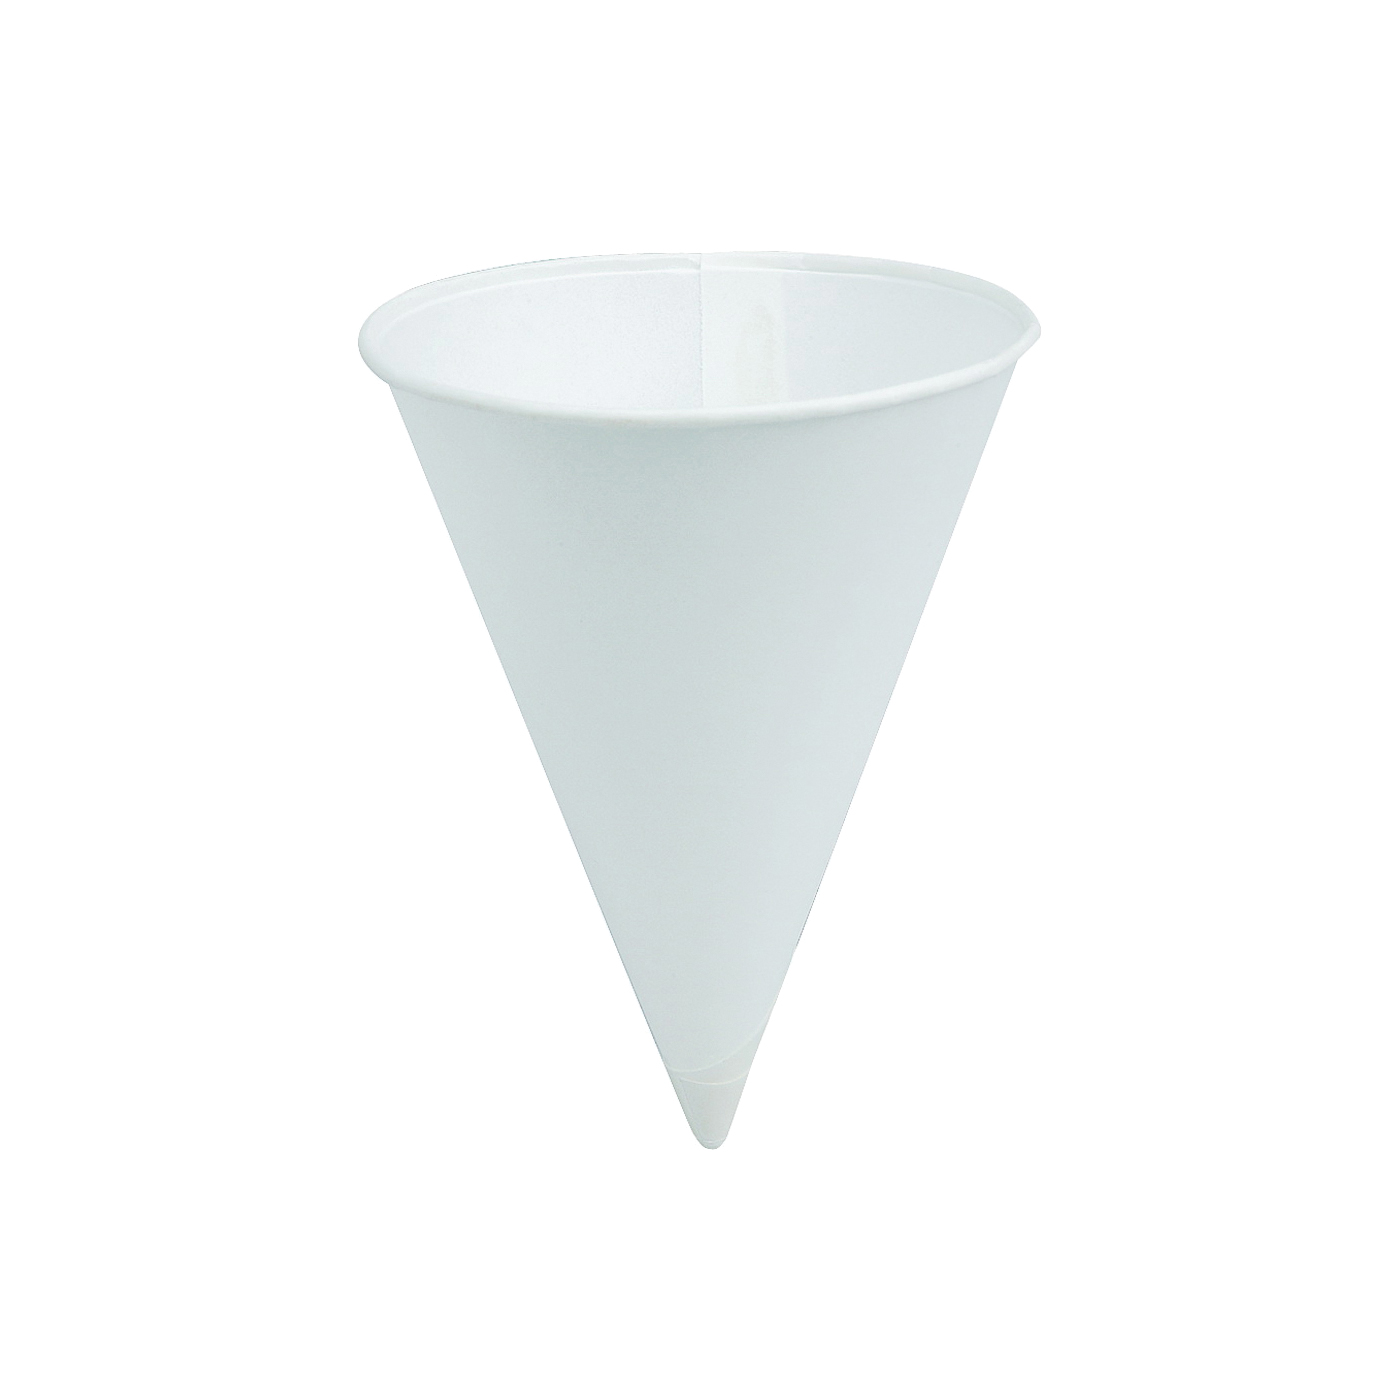 Picture of IGLOO 00025010 Paper Cups, Disposable, Paper, White, For: Igloo 8090 and 8243 Cup Dispensers